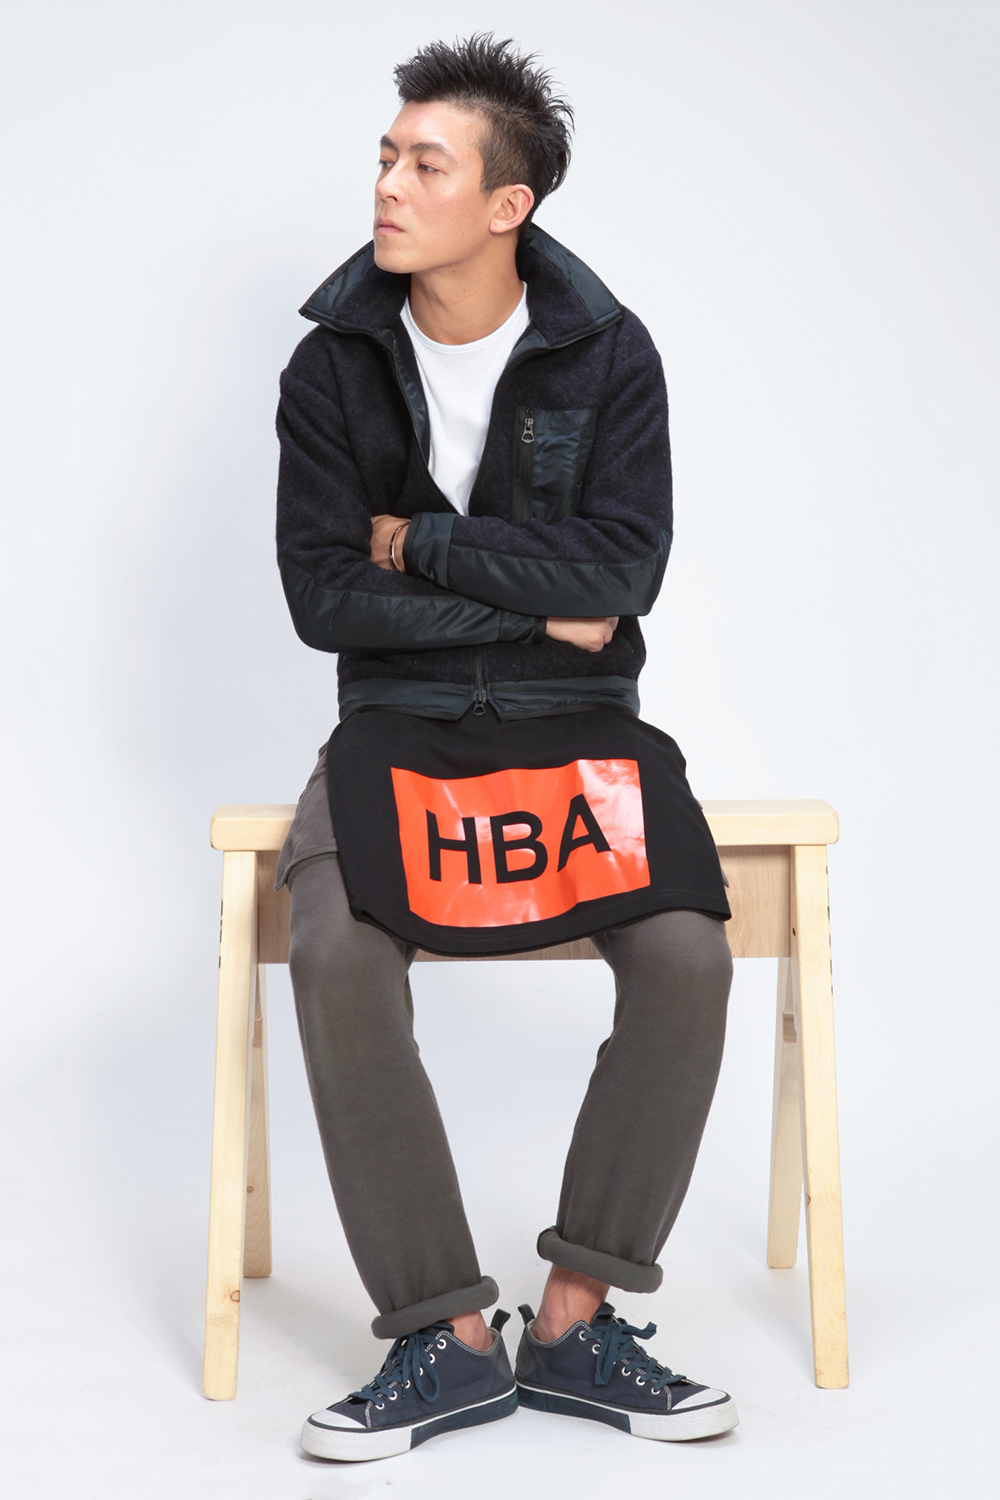 hood-by-air-2012-fall-winter-styling-lookbook-featuring-edison-chen-3.jpeg?w=1920